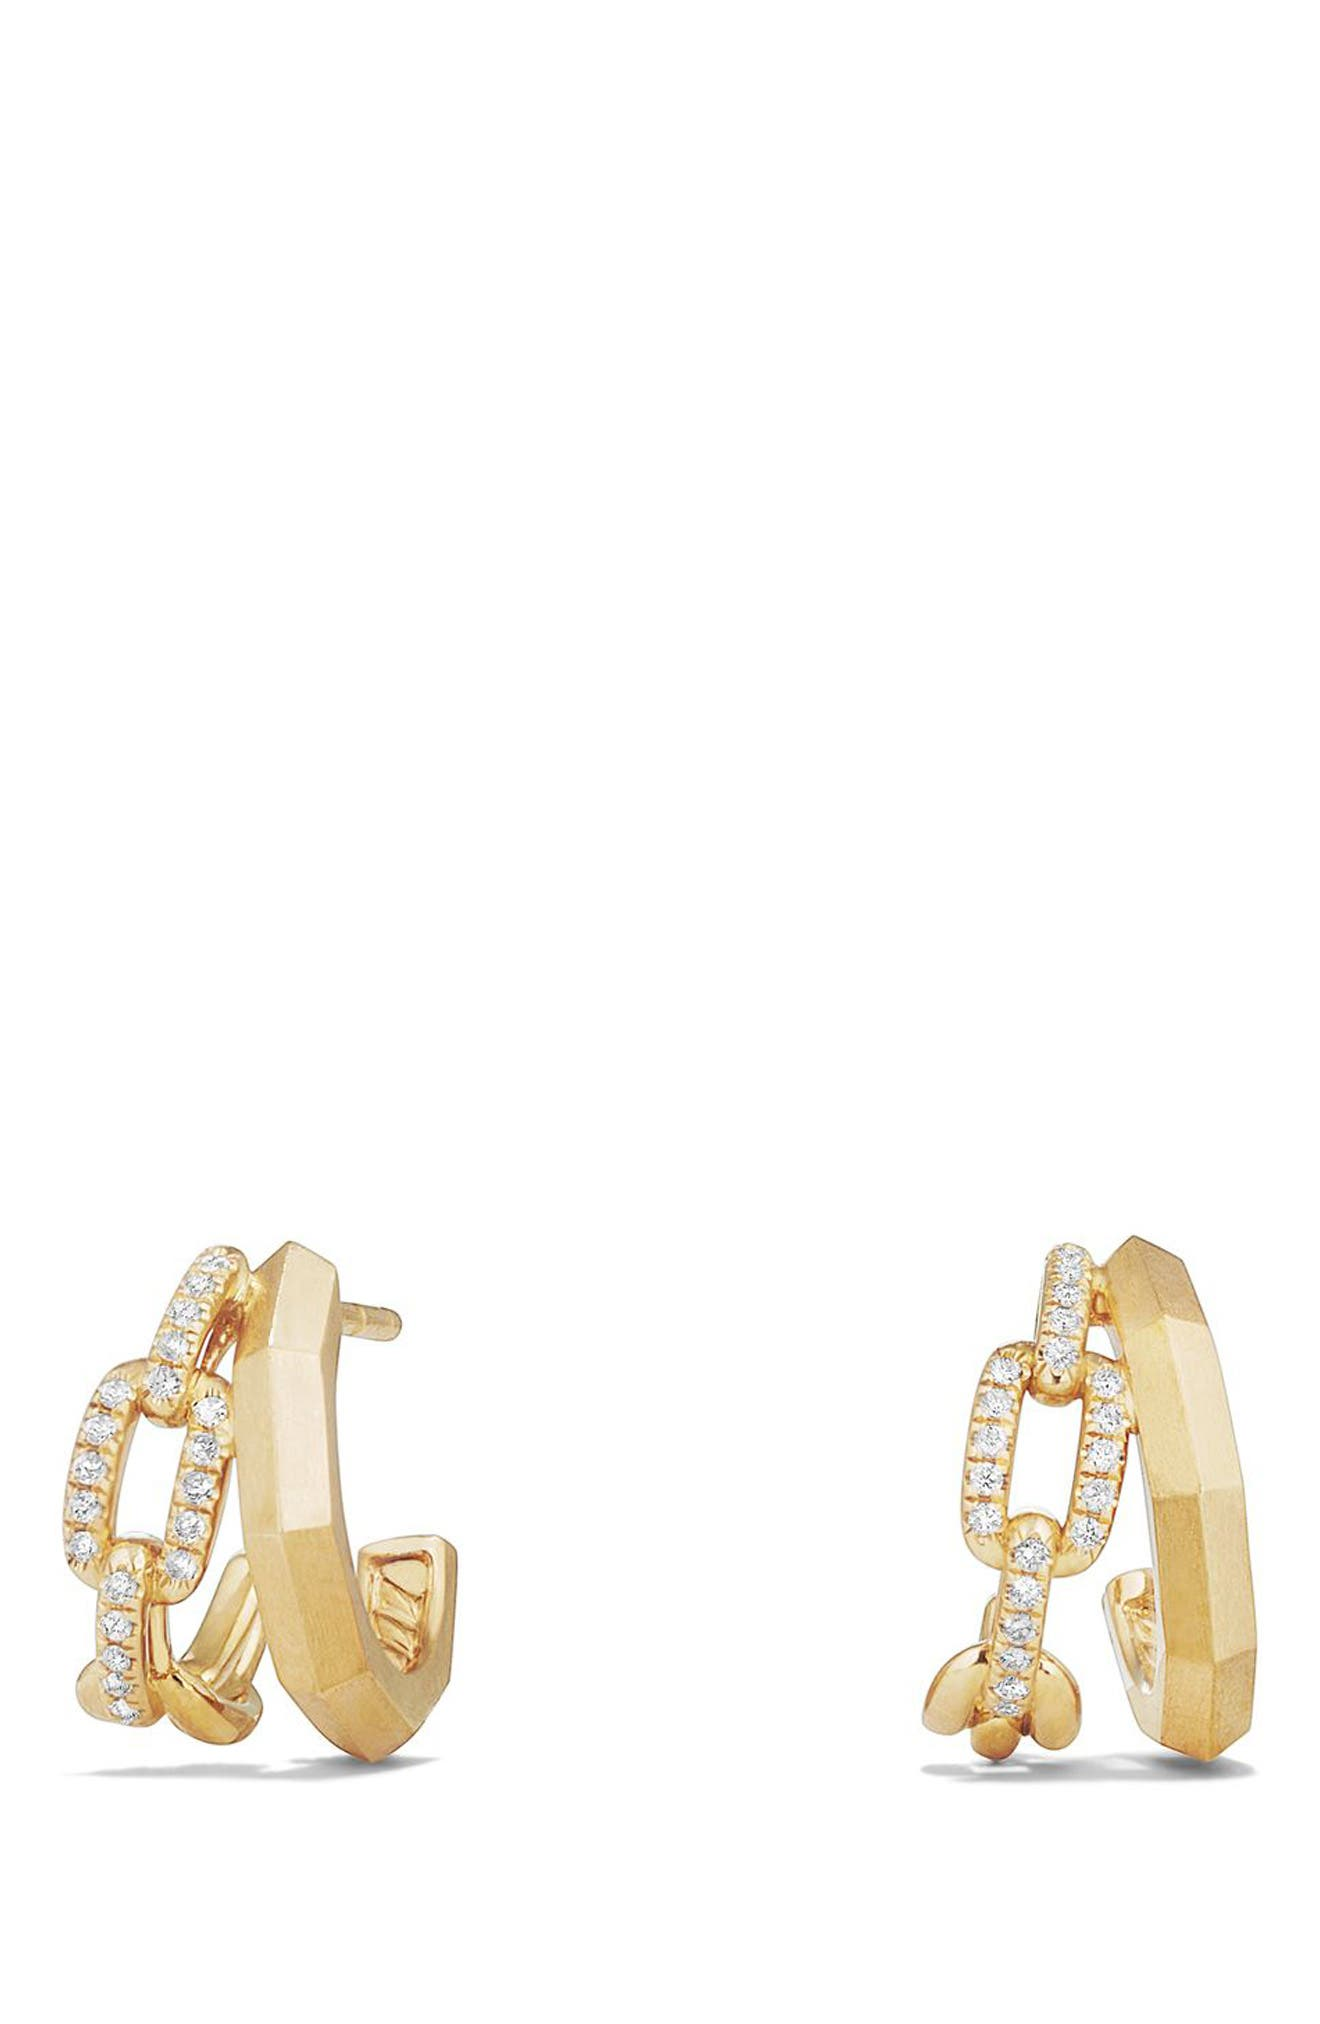 Stax Double Hoop Earrings with Diamonds,                             Main thumbnail 1, color,                             YELLOW GOLD